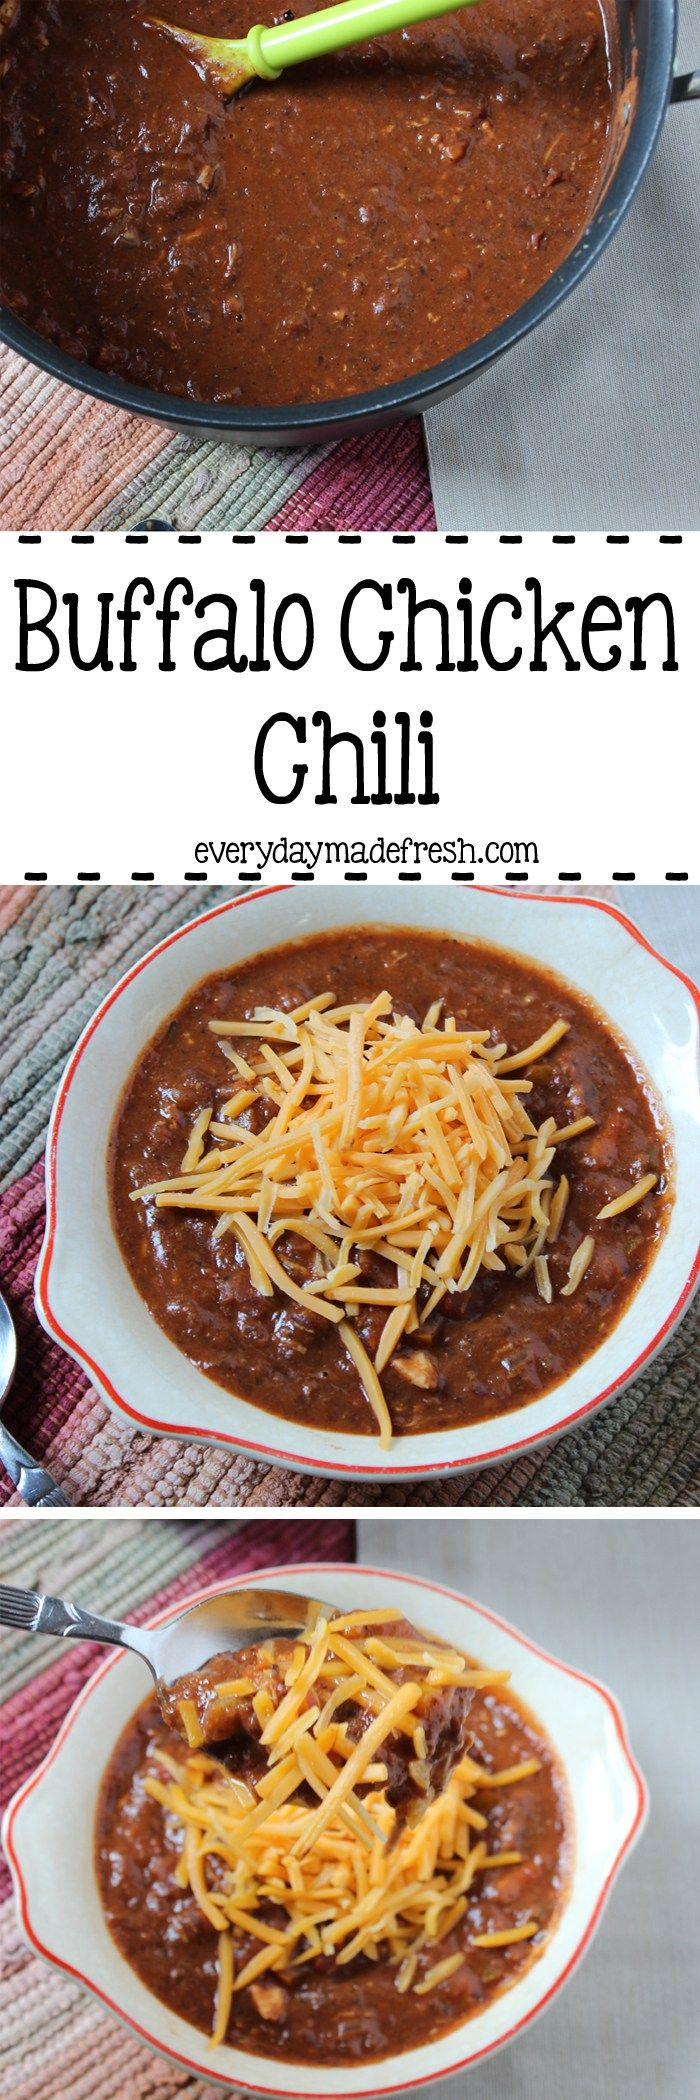 This Buffalo Chicken Chili is filled with shredded…Edit description